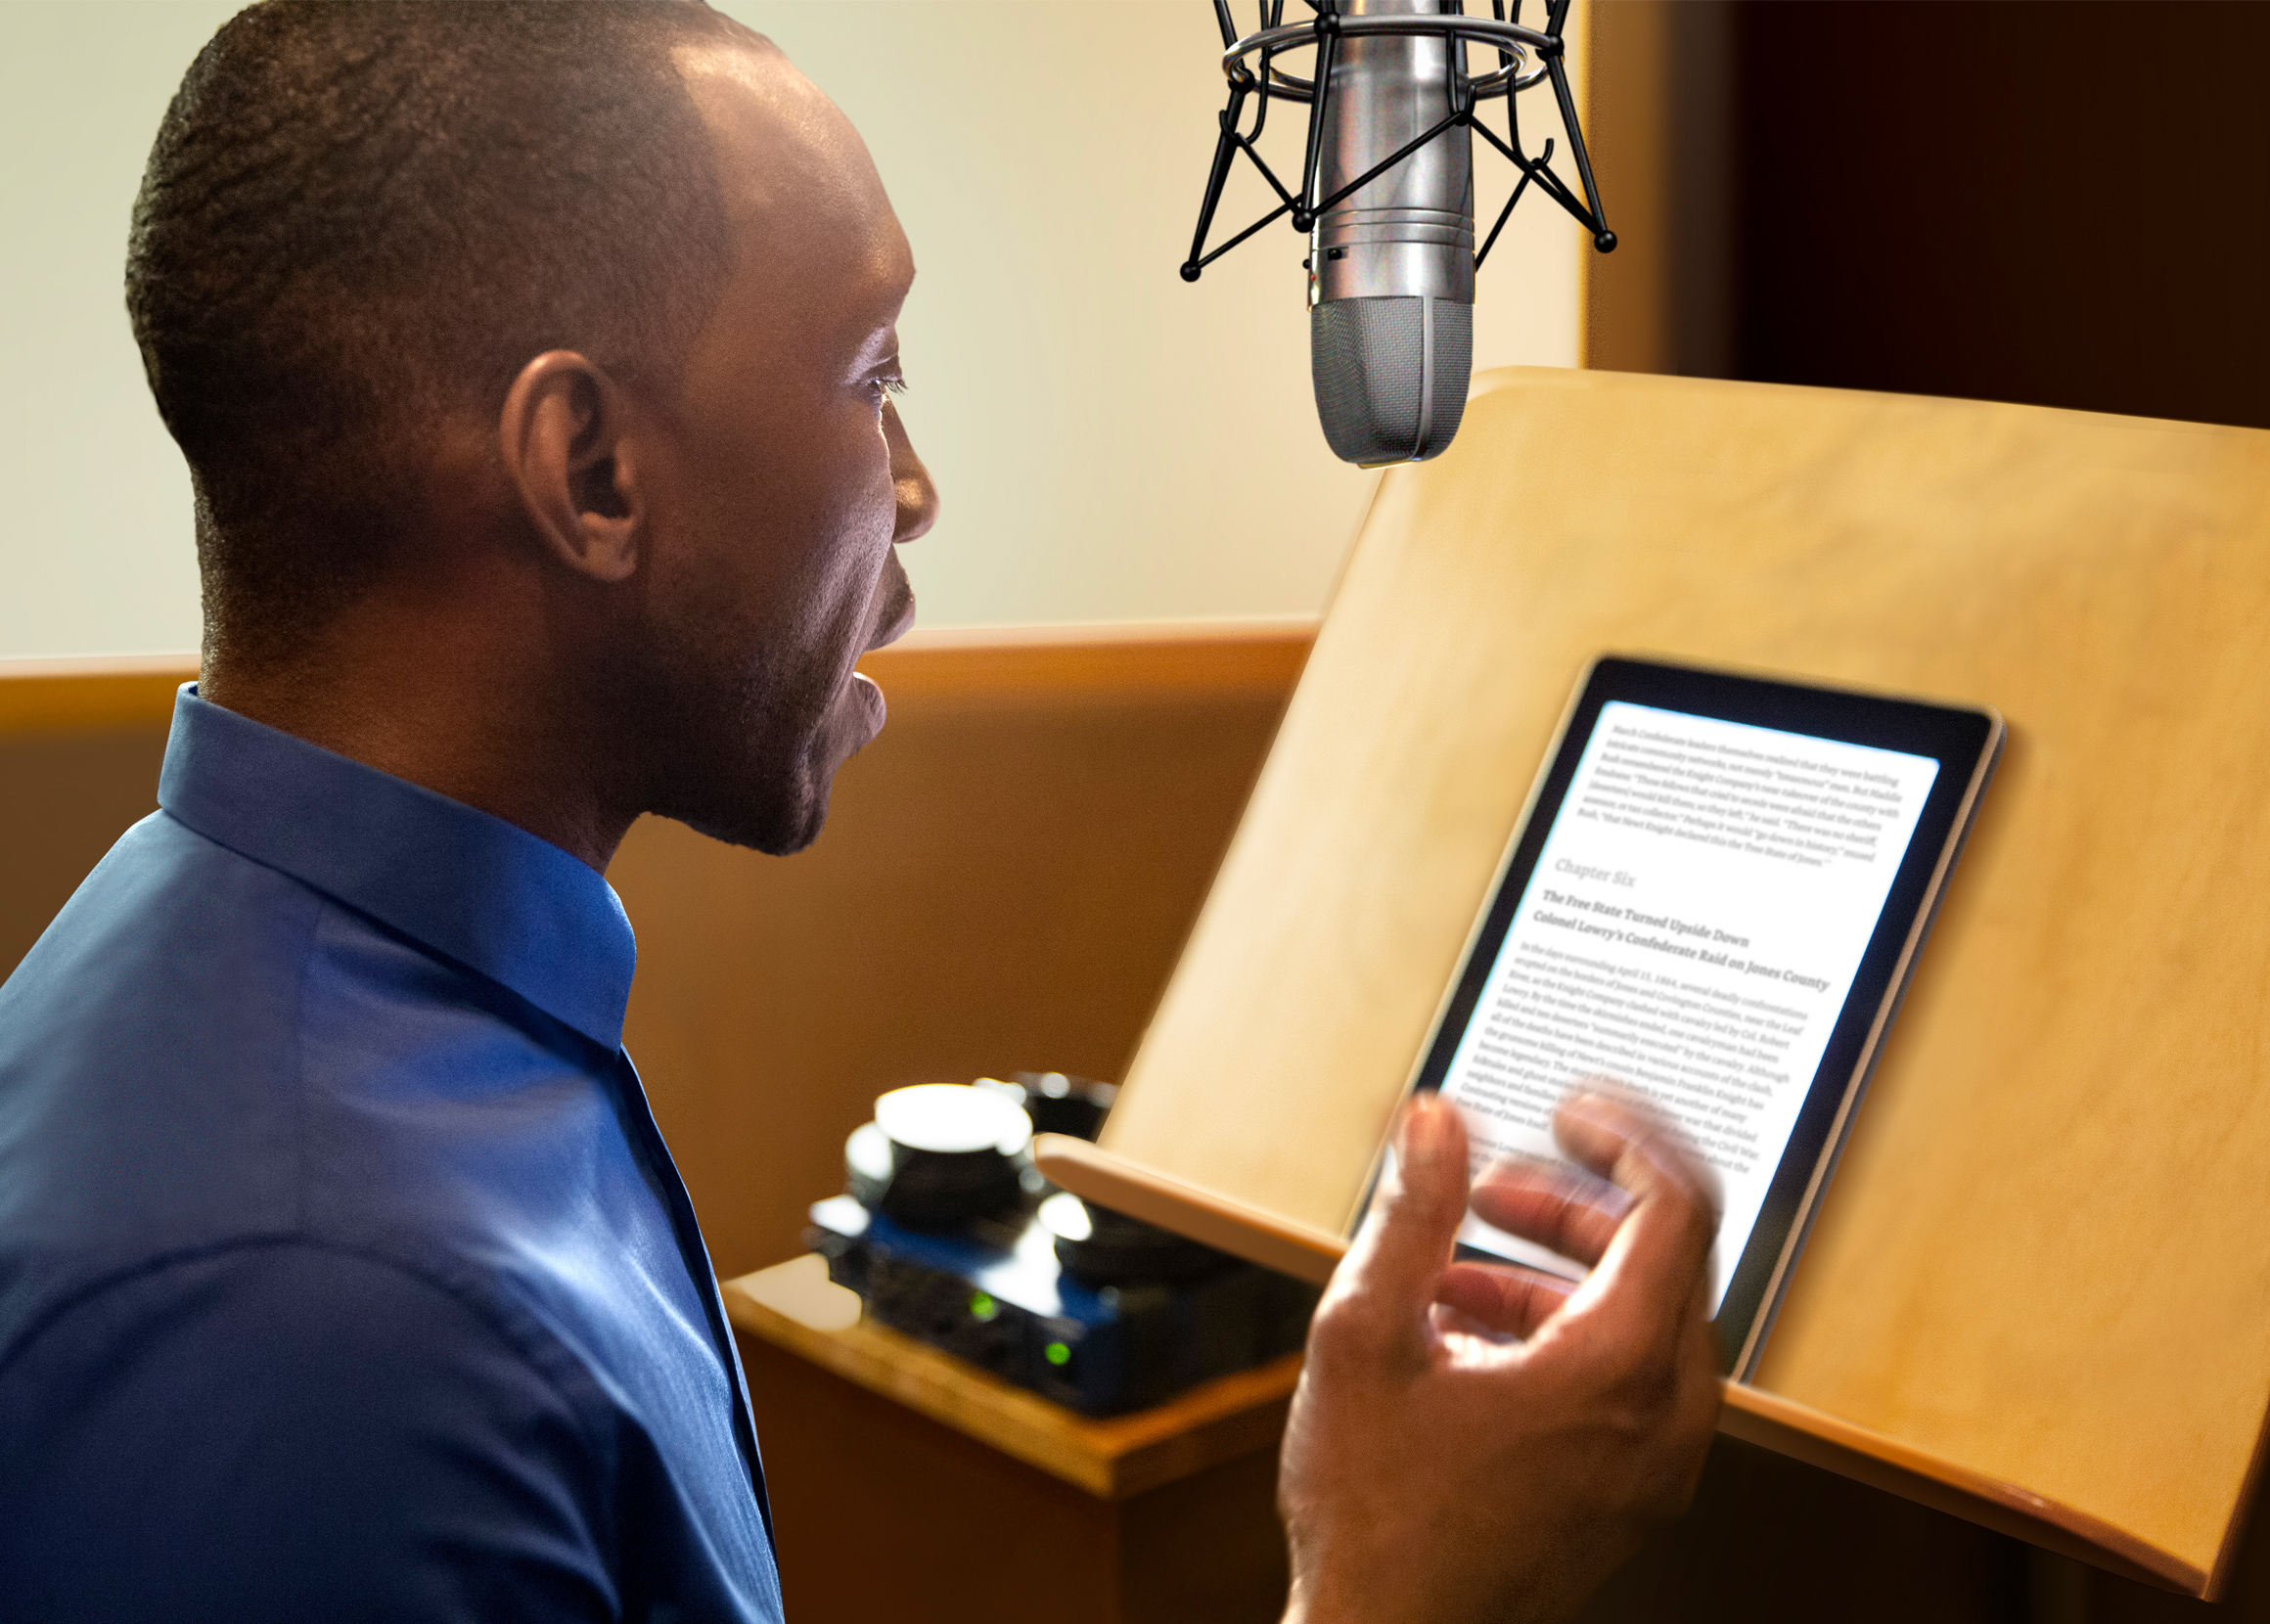 Amazon Audible Voice Over Jobs About Audible About Audible